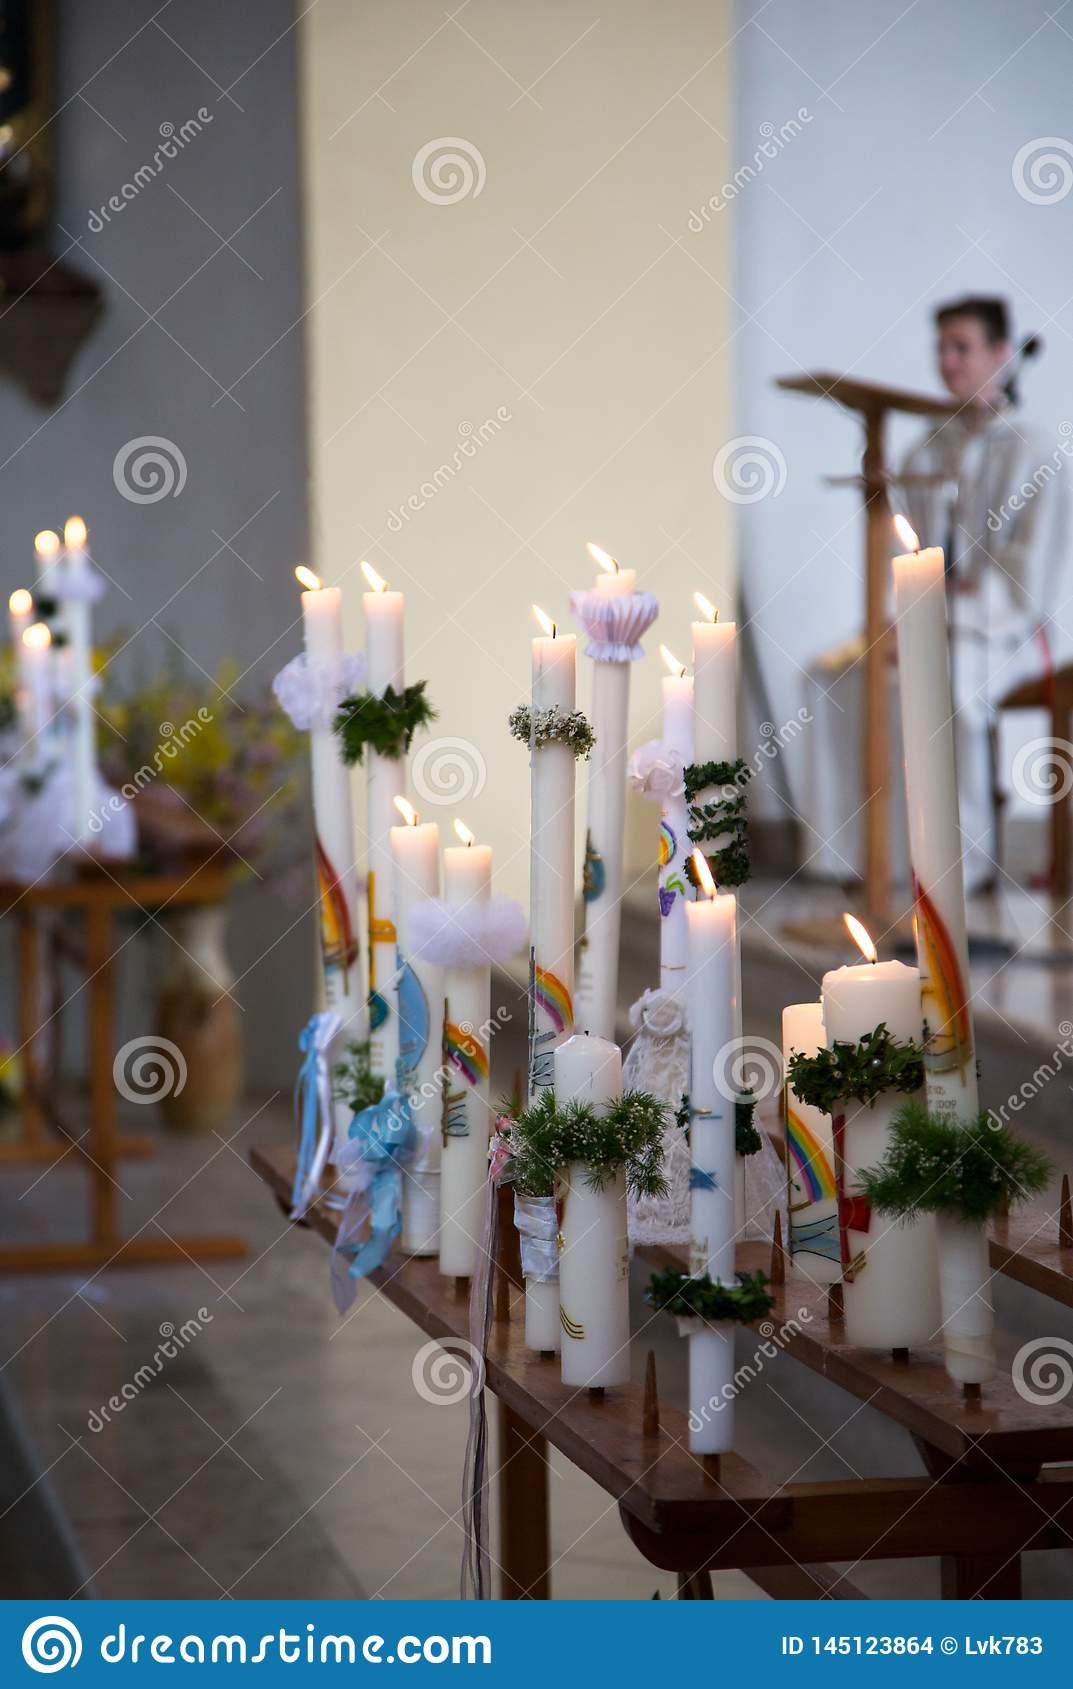 Communion candles in the Catholic Church